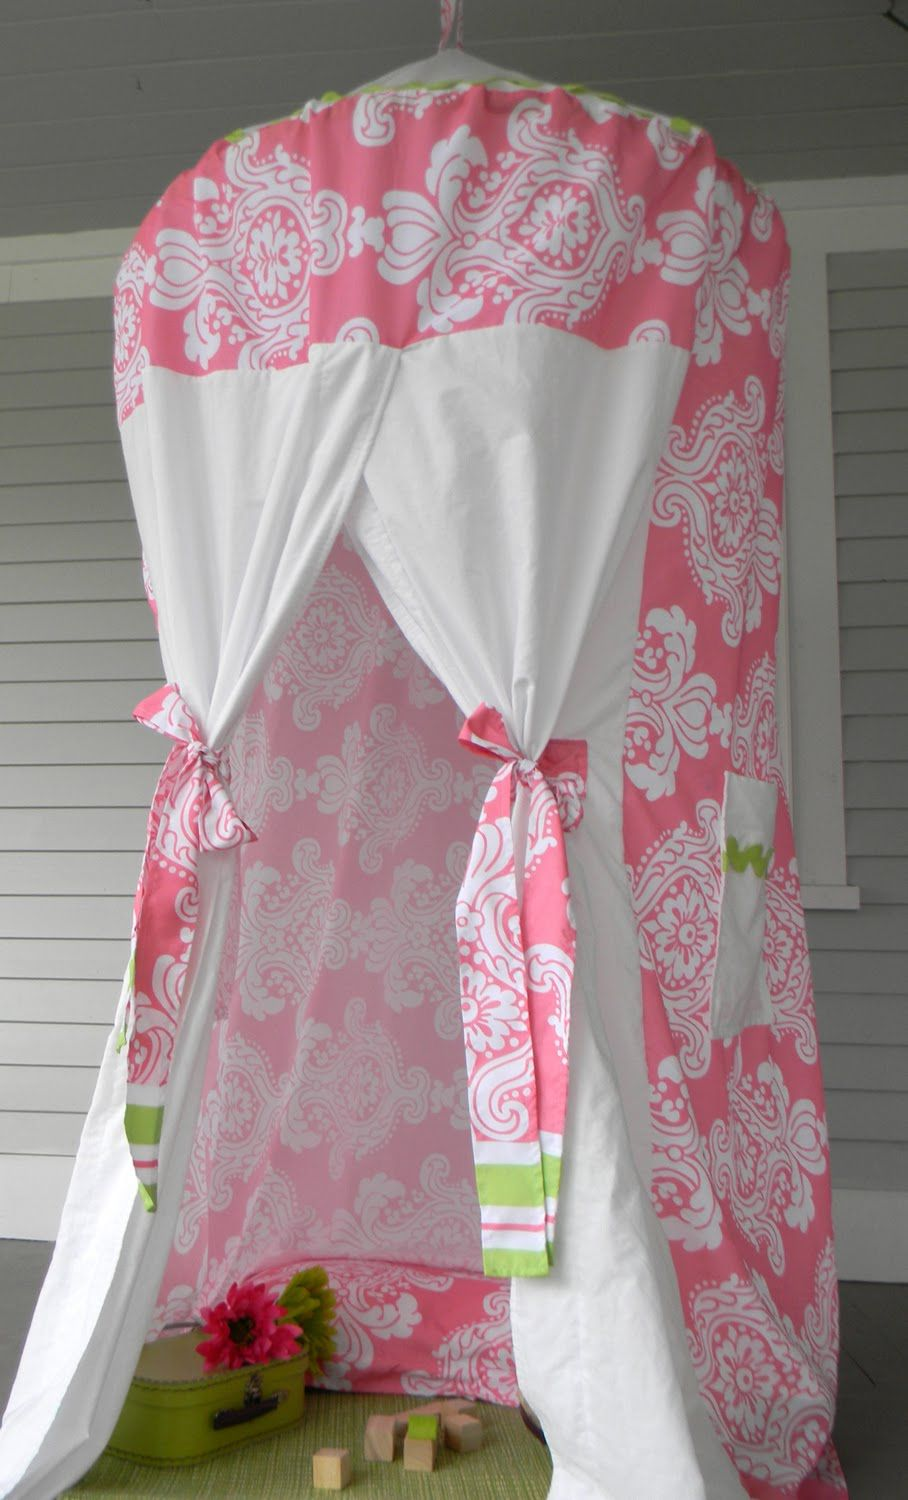 A pink and white play tent